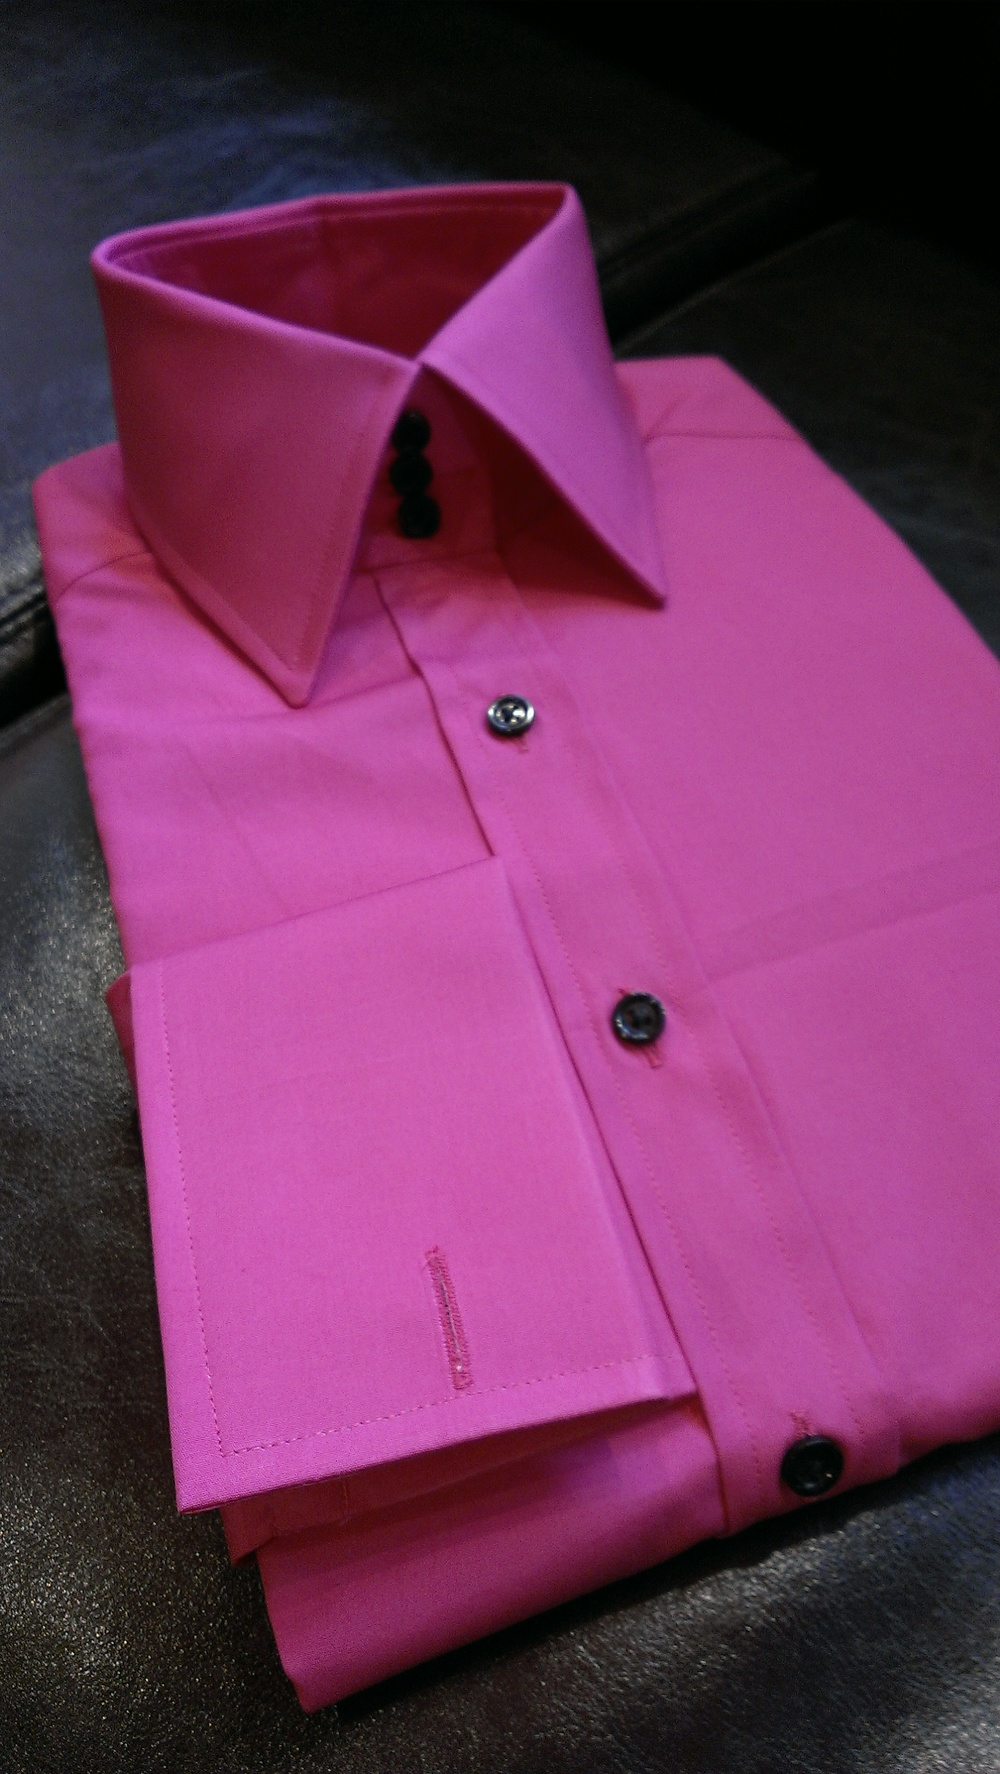 ladies-magenta-pink-cotton-bespoke-shirt-all-uk-made.jpg